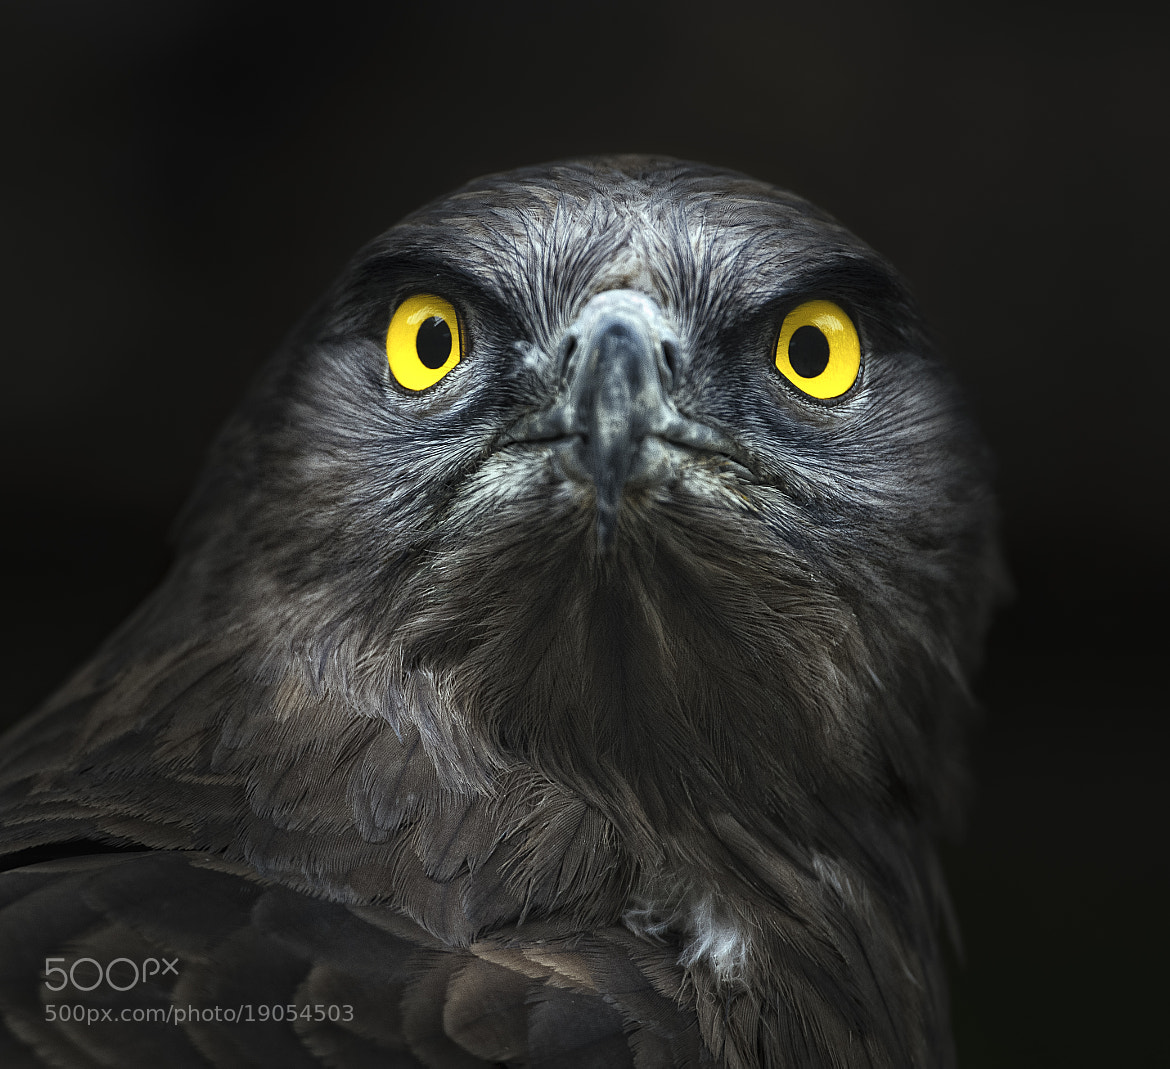 Photograph Hypnosis by jose pesquero on 500px